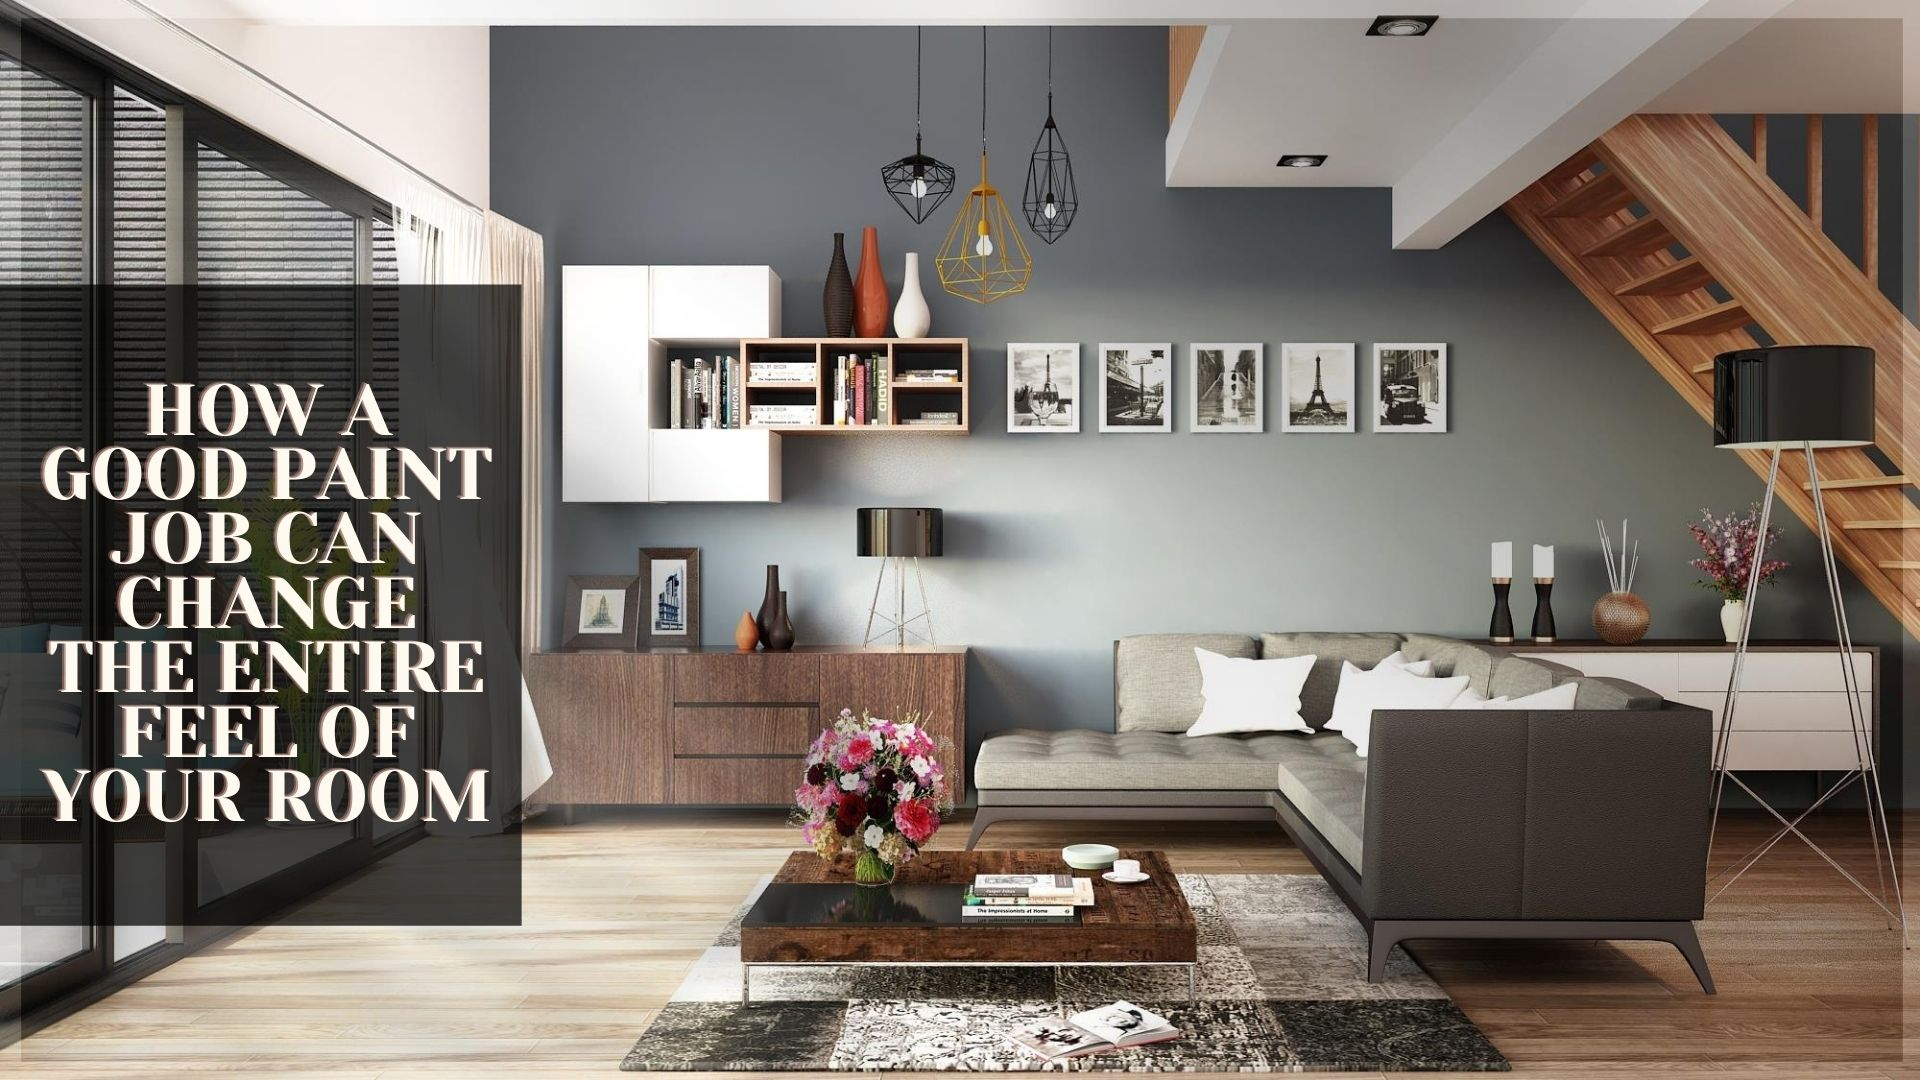 How a Good Paint Job Can Change the Entire Feel of Your Room